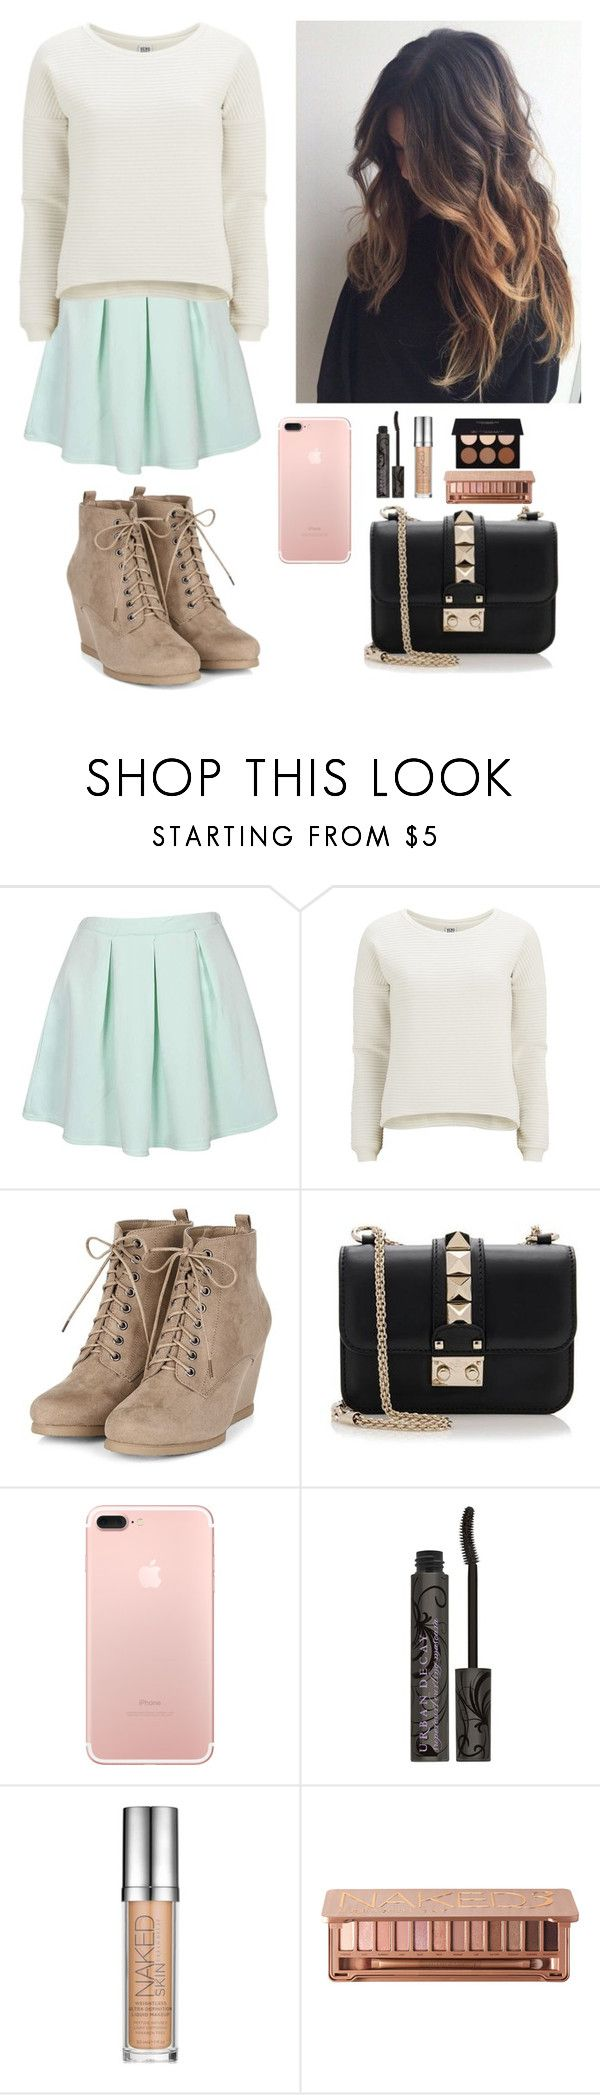 """""""Museum of contemporary art Tuesday May 30 S7 Australia 2"""" by soccerstar913 ❤ liked on Polyvore featuring Vero Moda, Valentino, Urban Decay, Anastasia Beverly Hills and contemporary"""